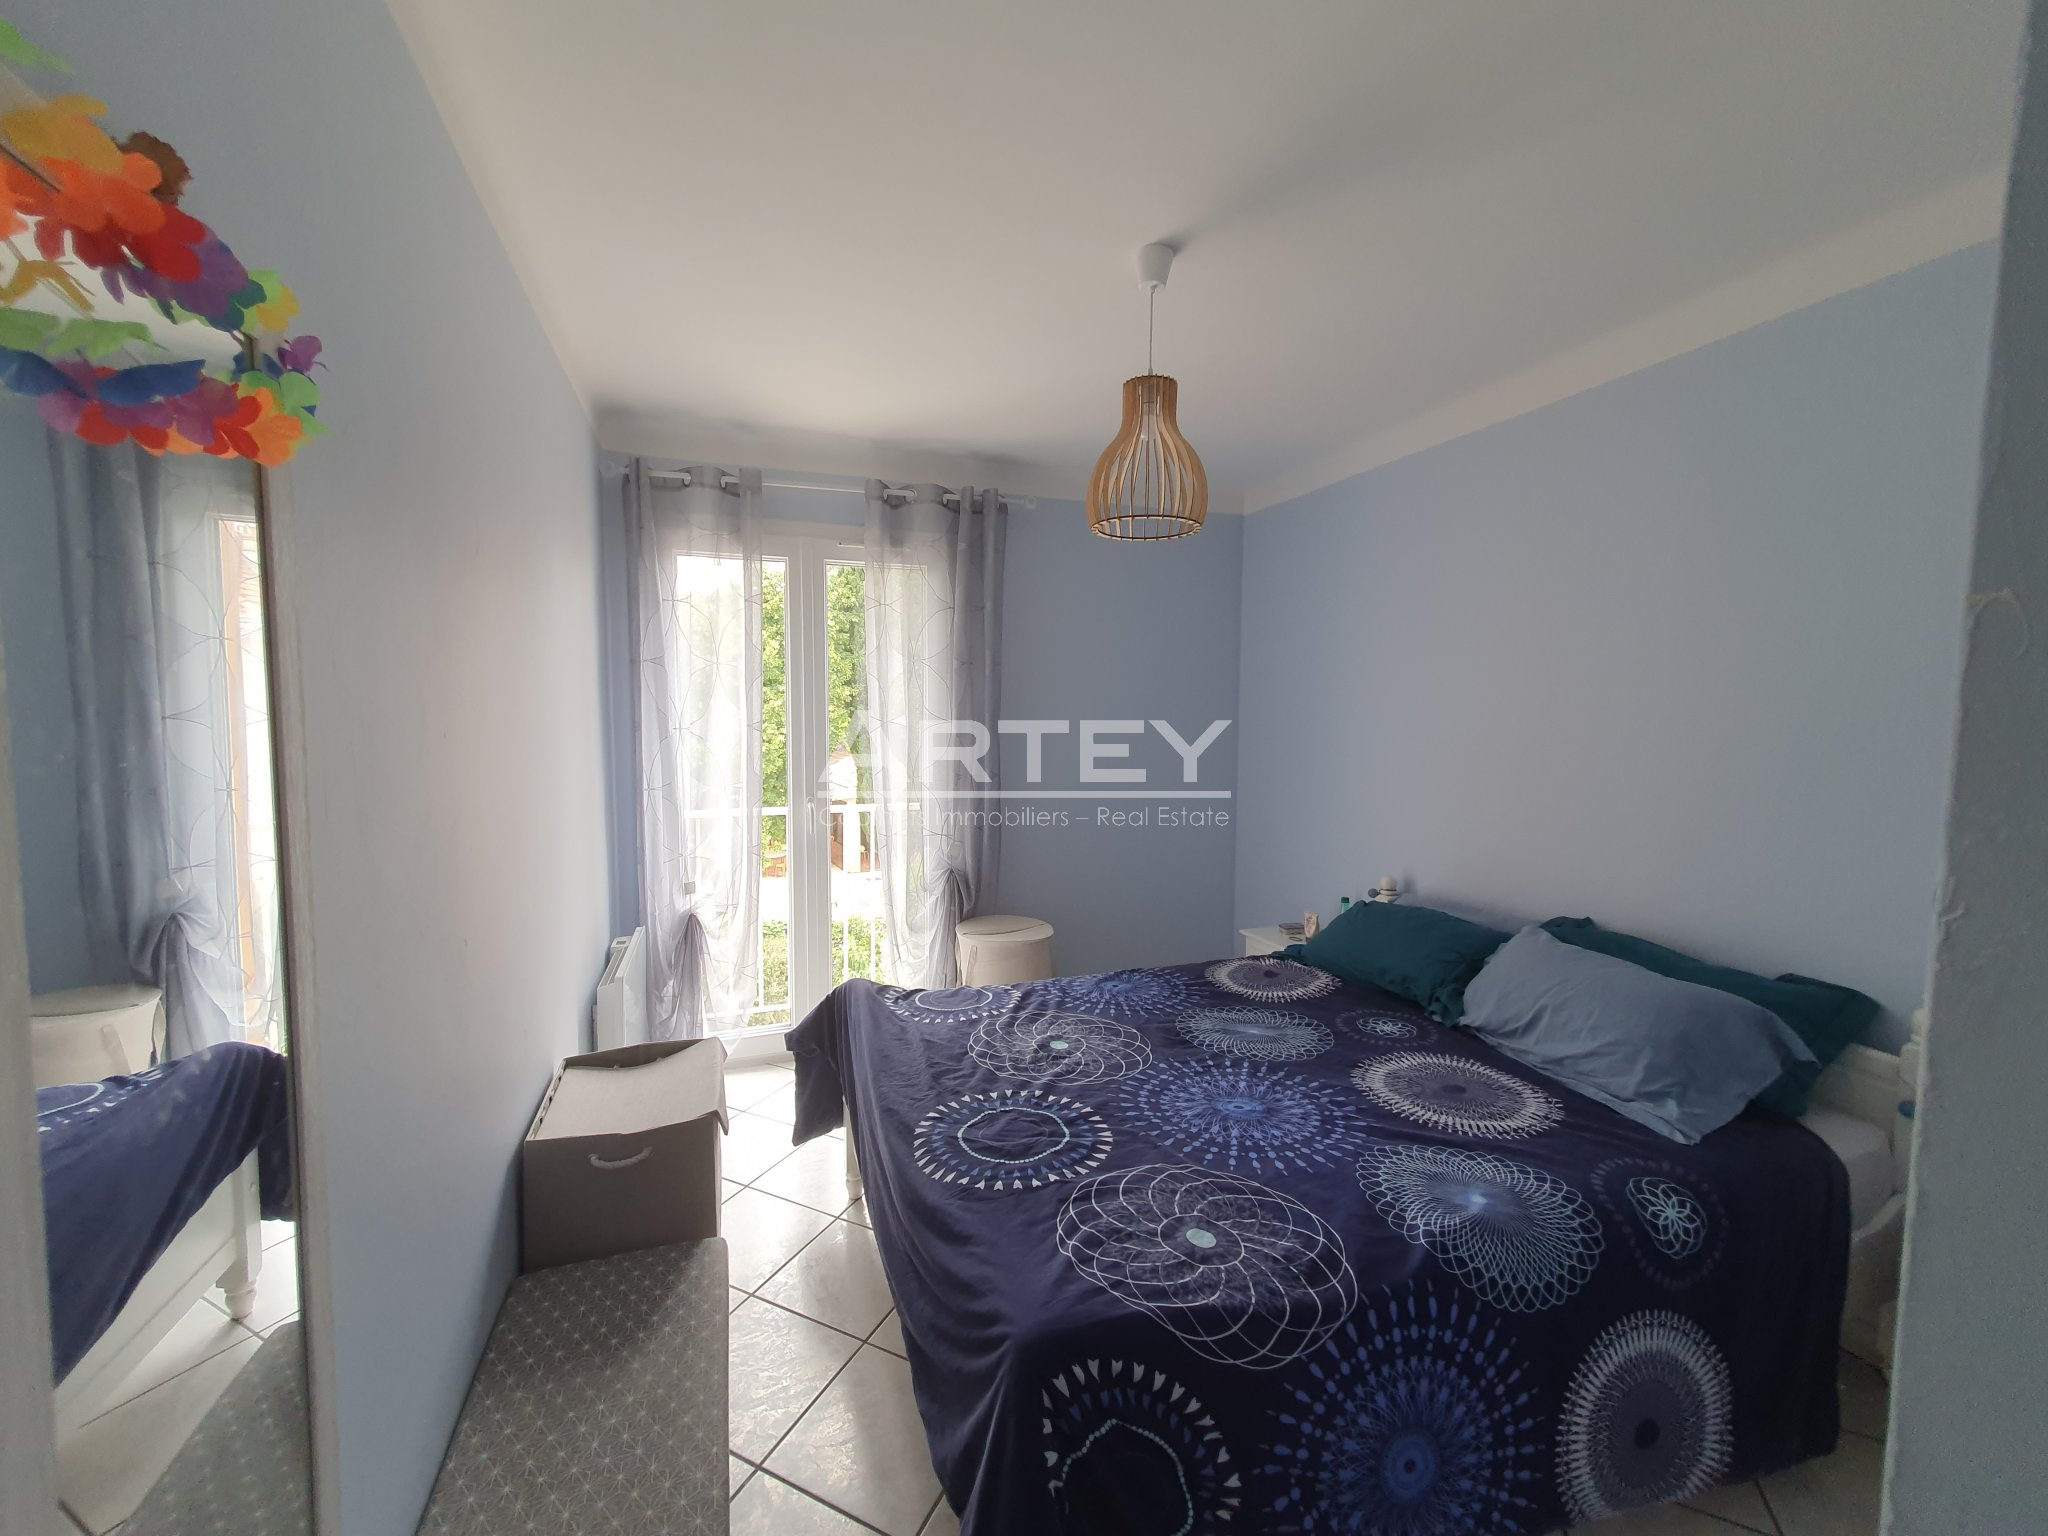 Apartment - Carqueiranne 83320